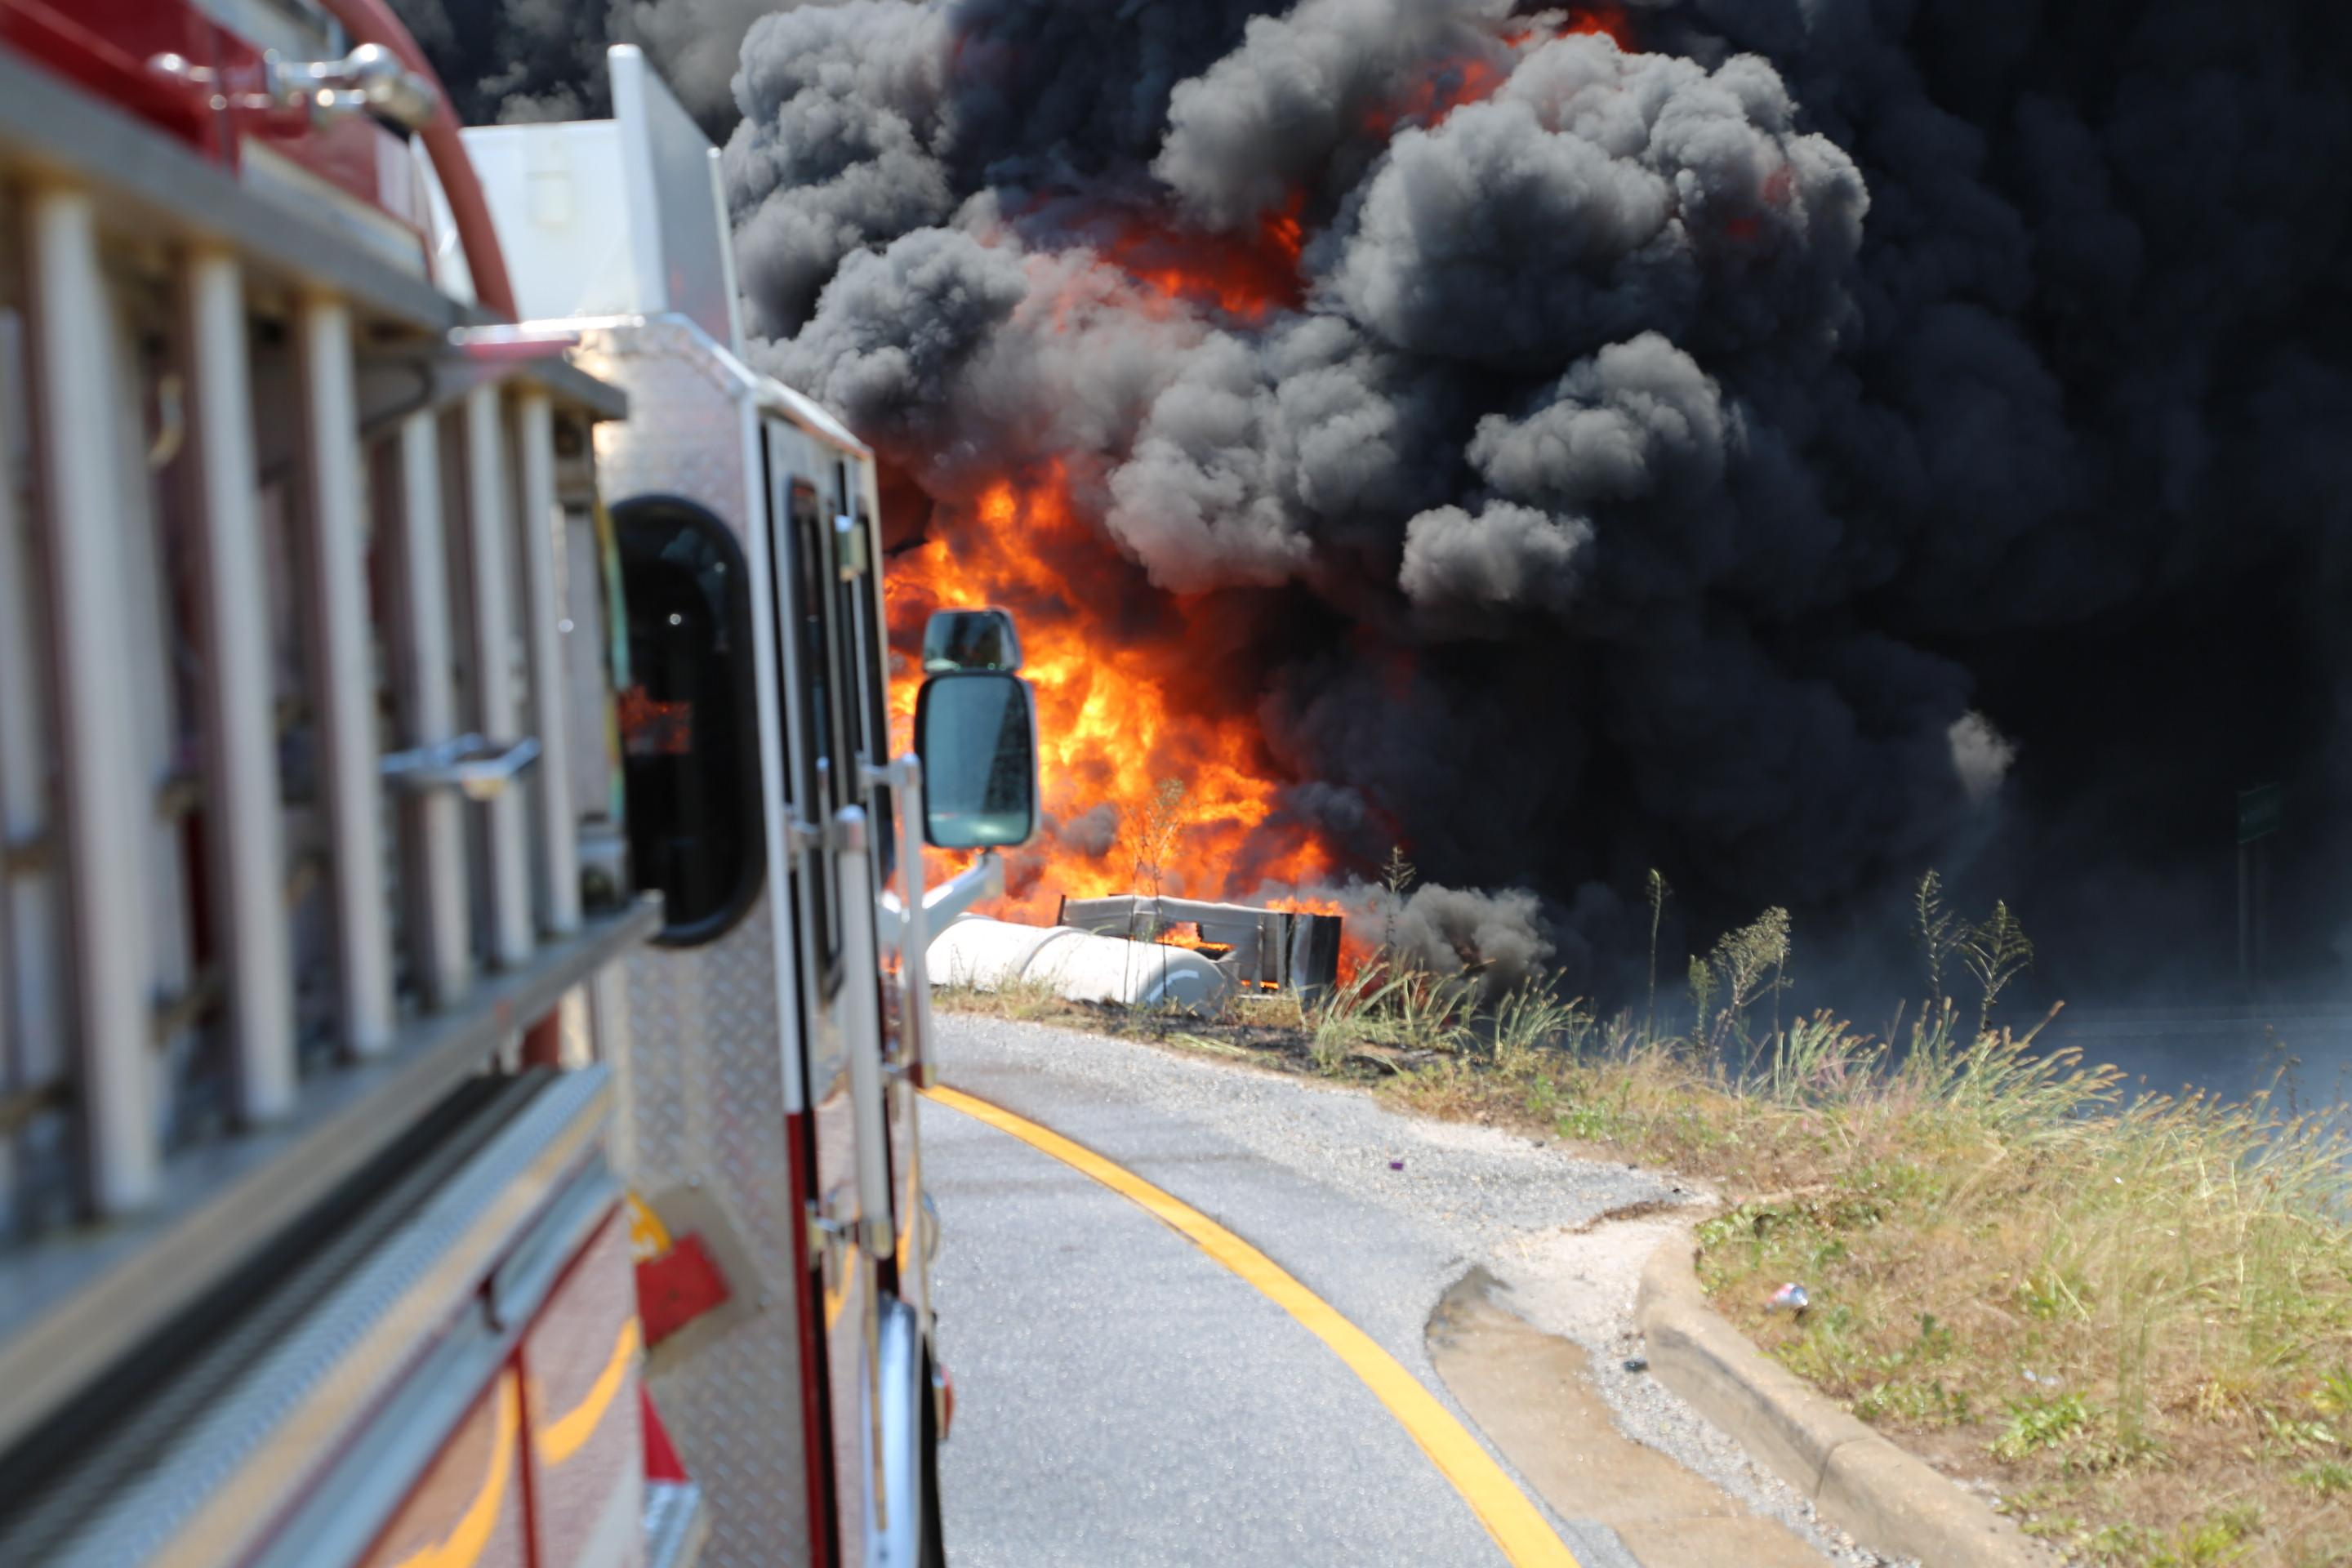 (image: Mobile Fire-Rescue) Overturned tanker truck causes giant fire on I-10, driver fatality